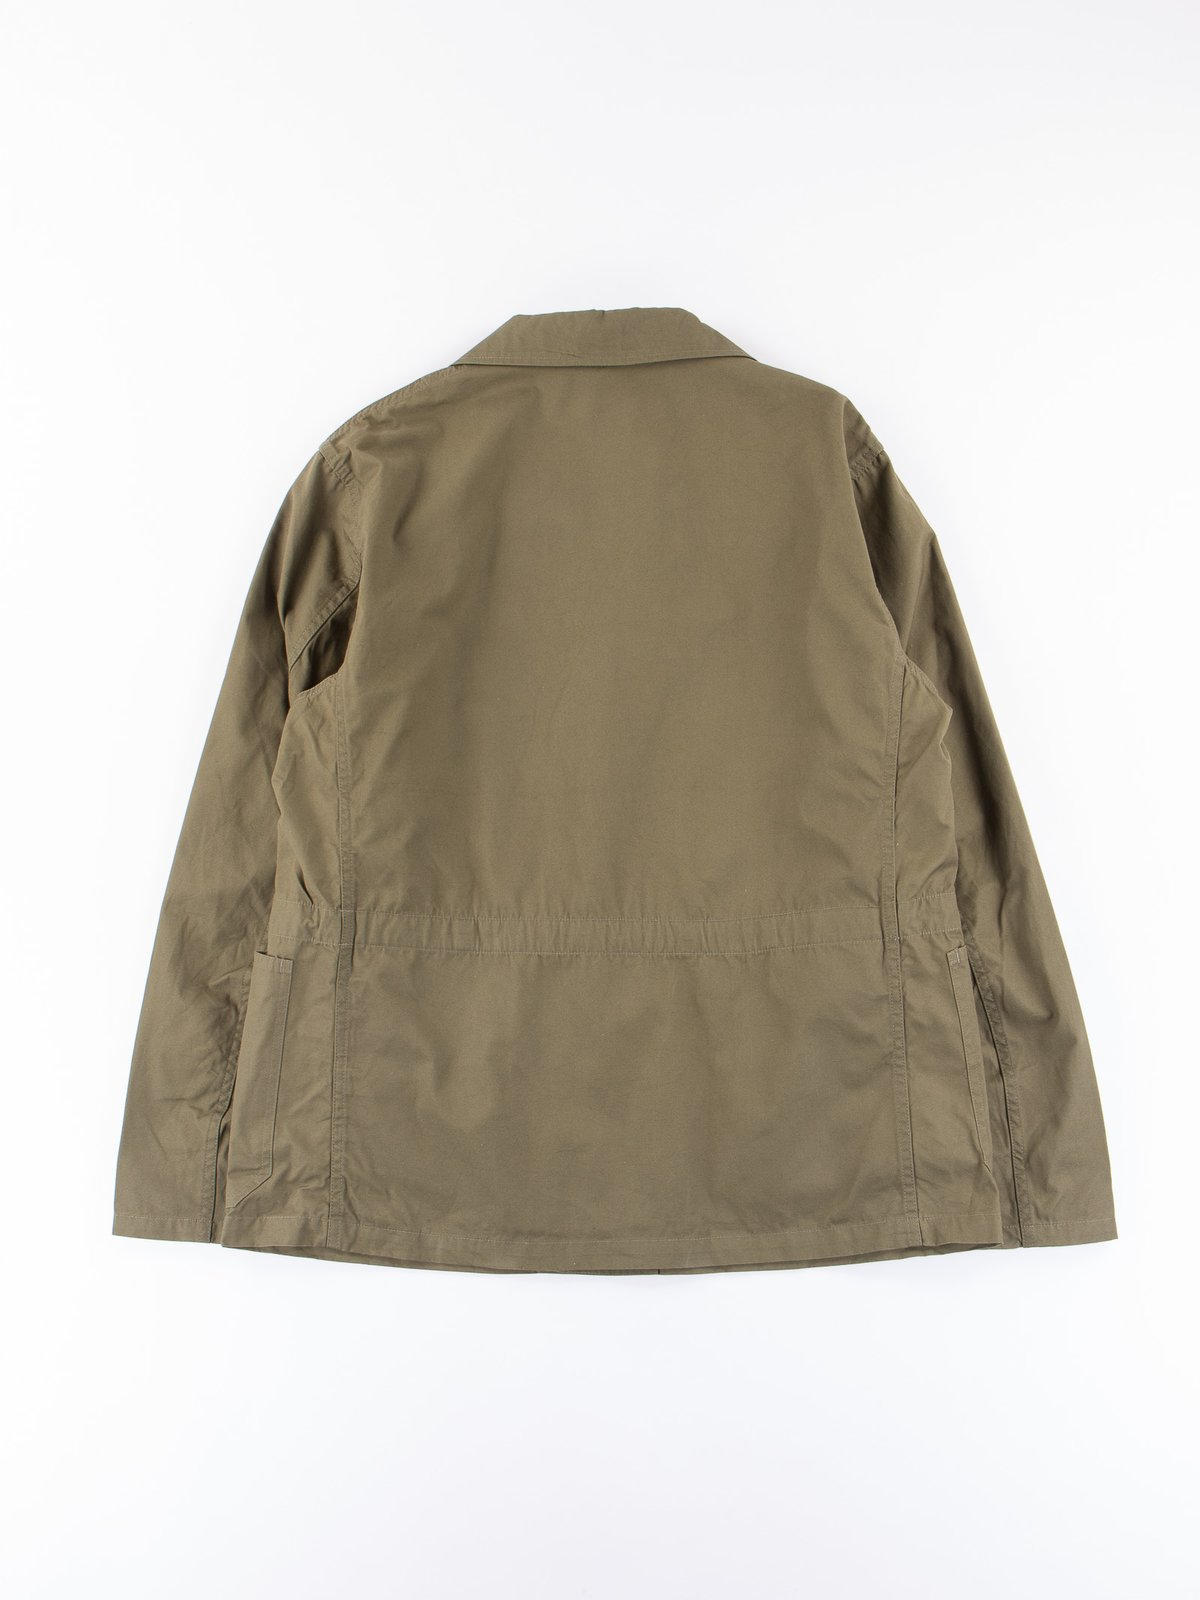 Olive Utility Coverall Jacket - Image 5